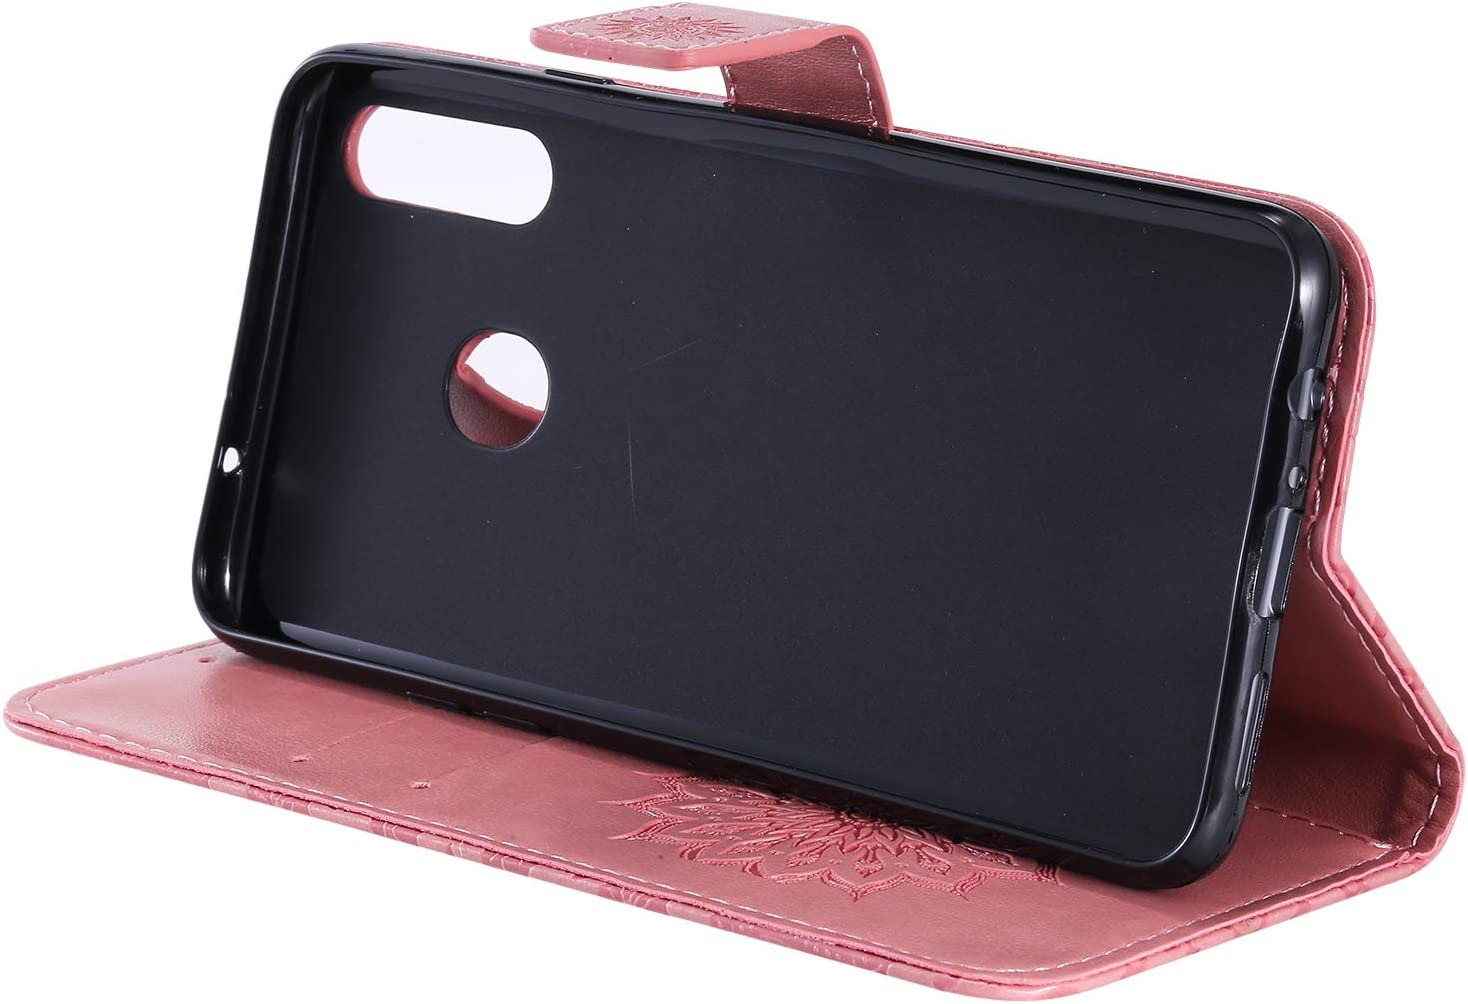 Shockproof Leather Flip Cover Case for Samsung Galaxy A20S NEXCURIO Wallet Case for Galaxy A20S with Card Holder Side Pocket Kickstand NEKTU020528 Rose Gold